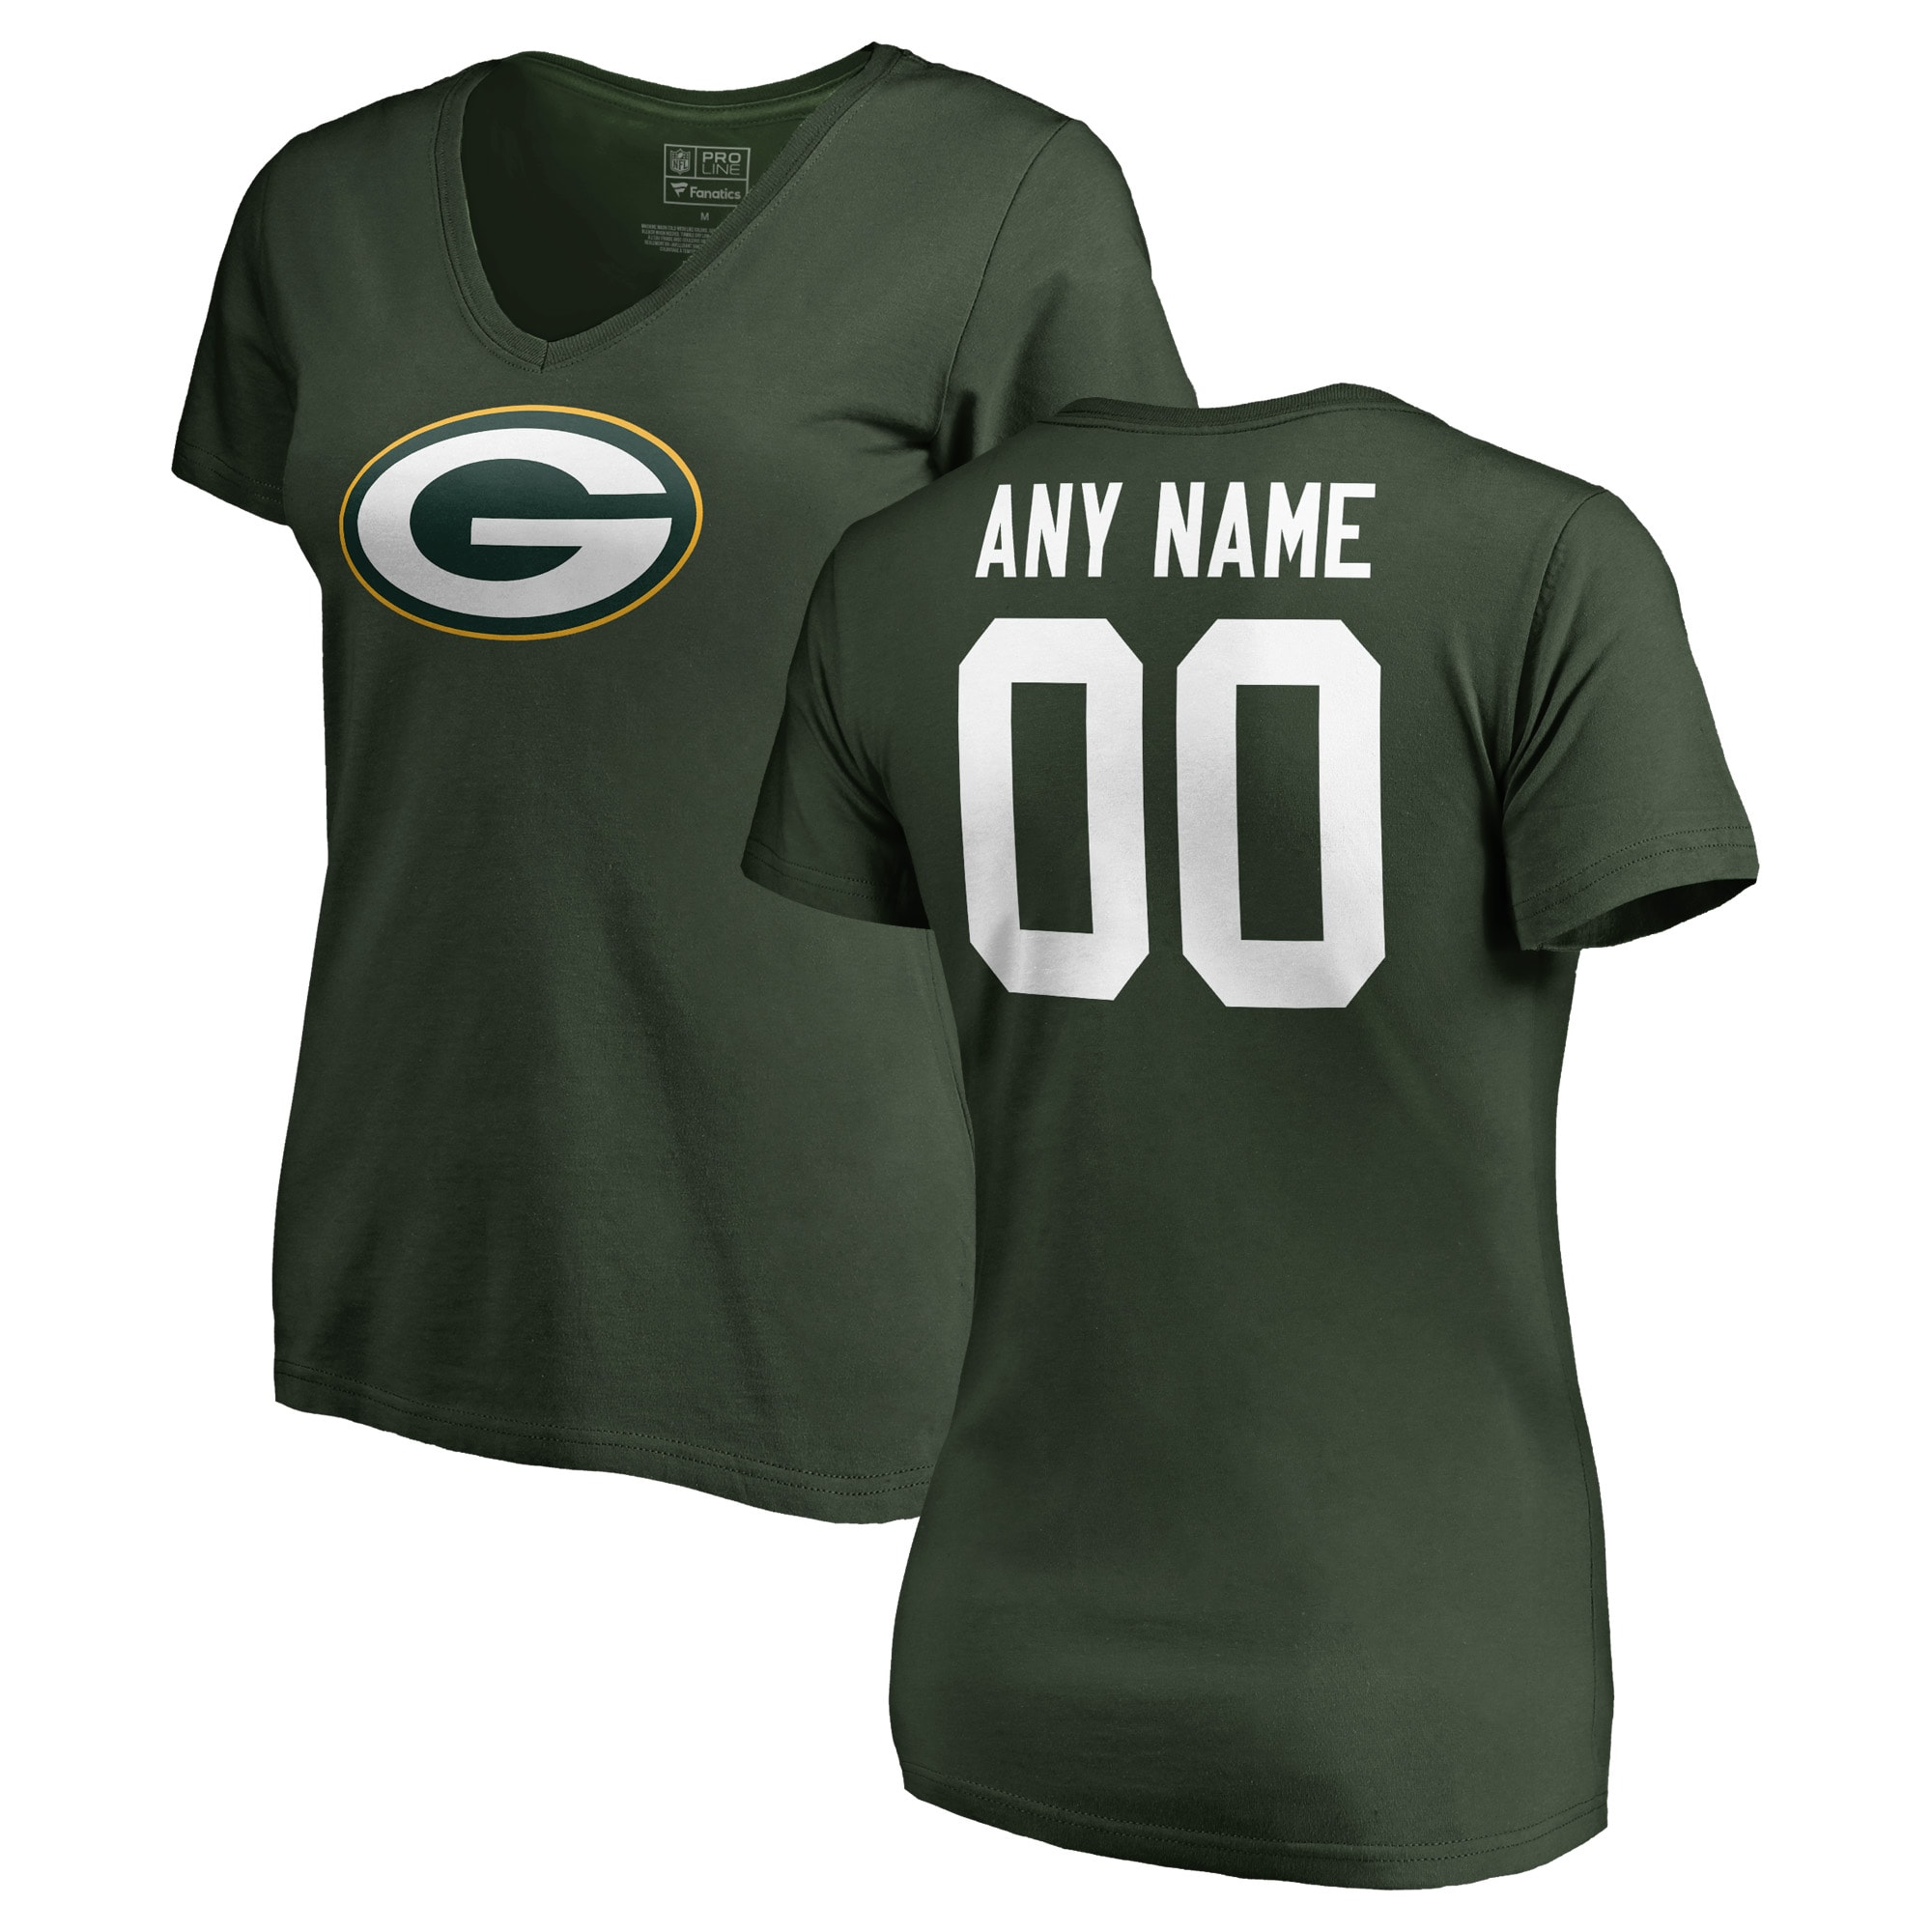 Green Bay Packers NFL Pro Line Women's Any Name & Number Logo Personalized T-Shirt - Green